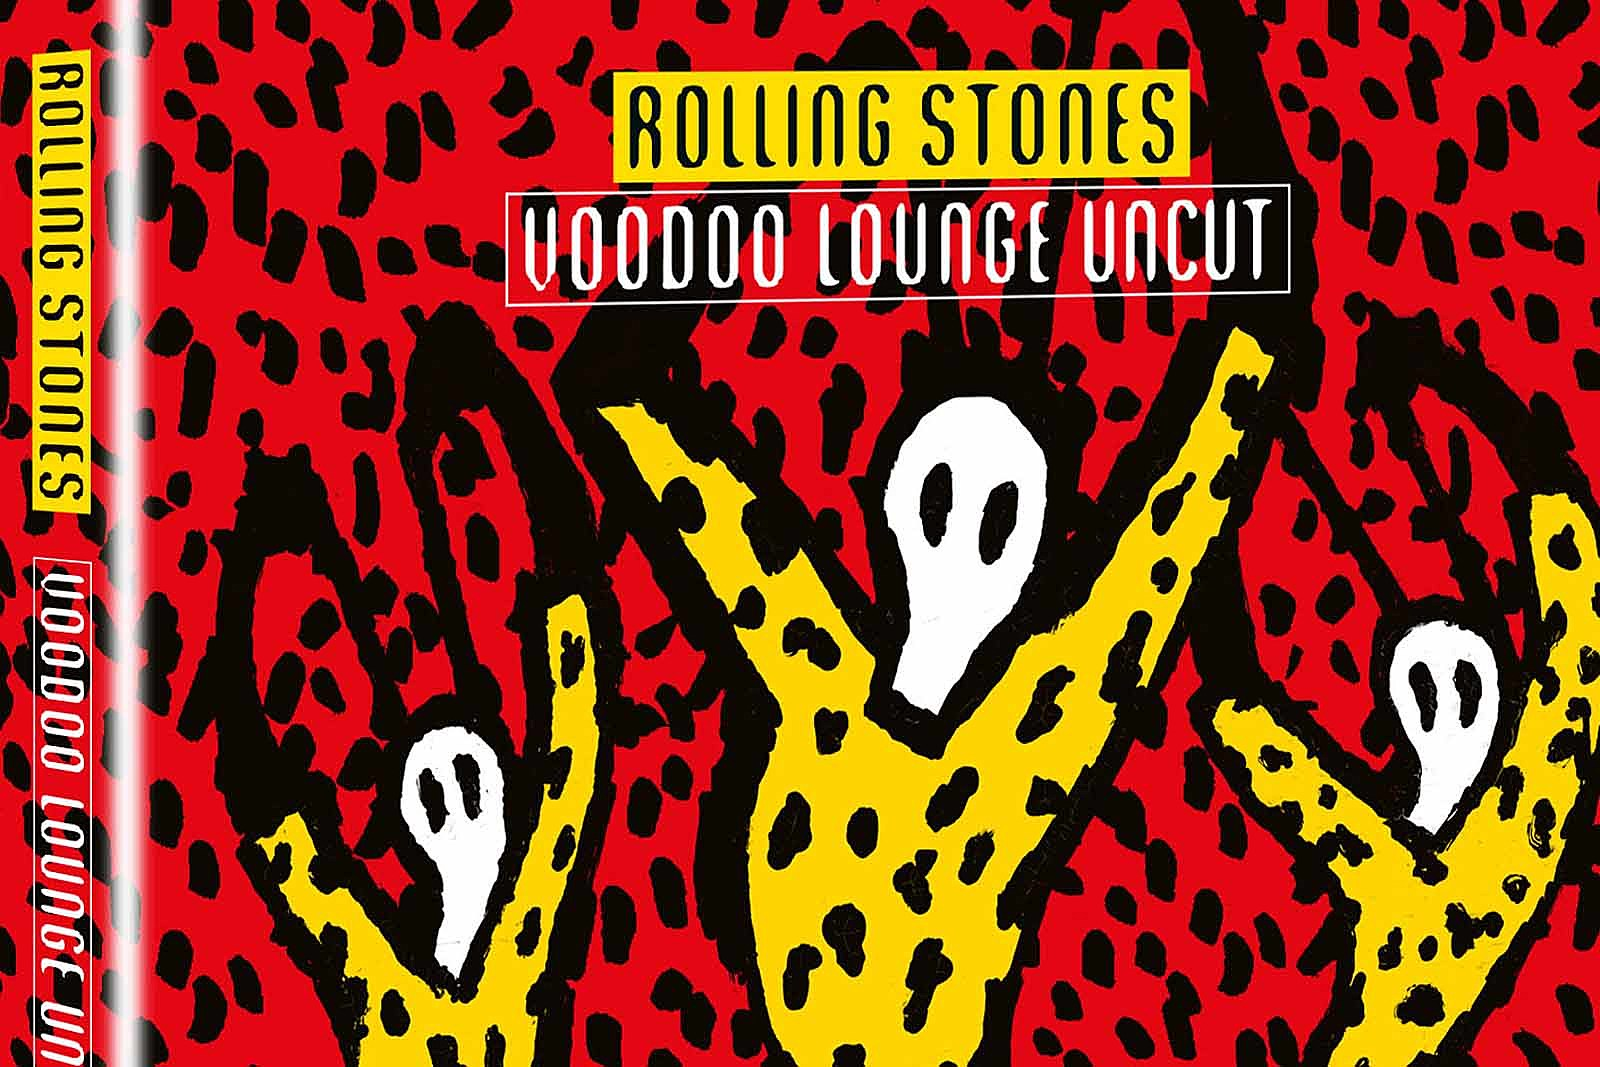 Watch 'It's Only Rock 'N Roll' From Rolling Stones' 'Voodoo Lounge Uncut': Exclusive Premiere